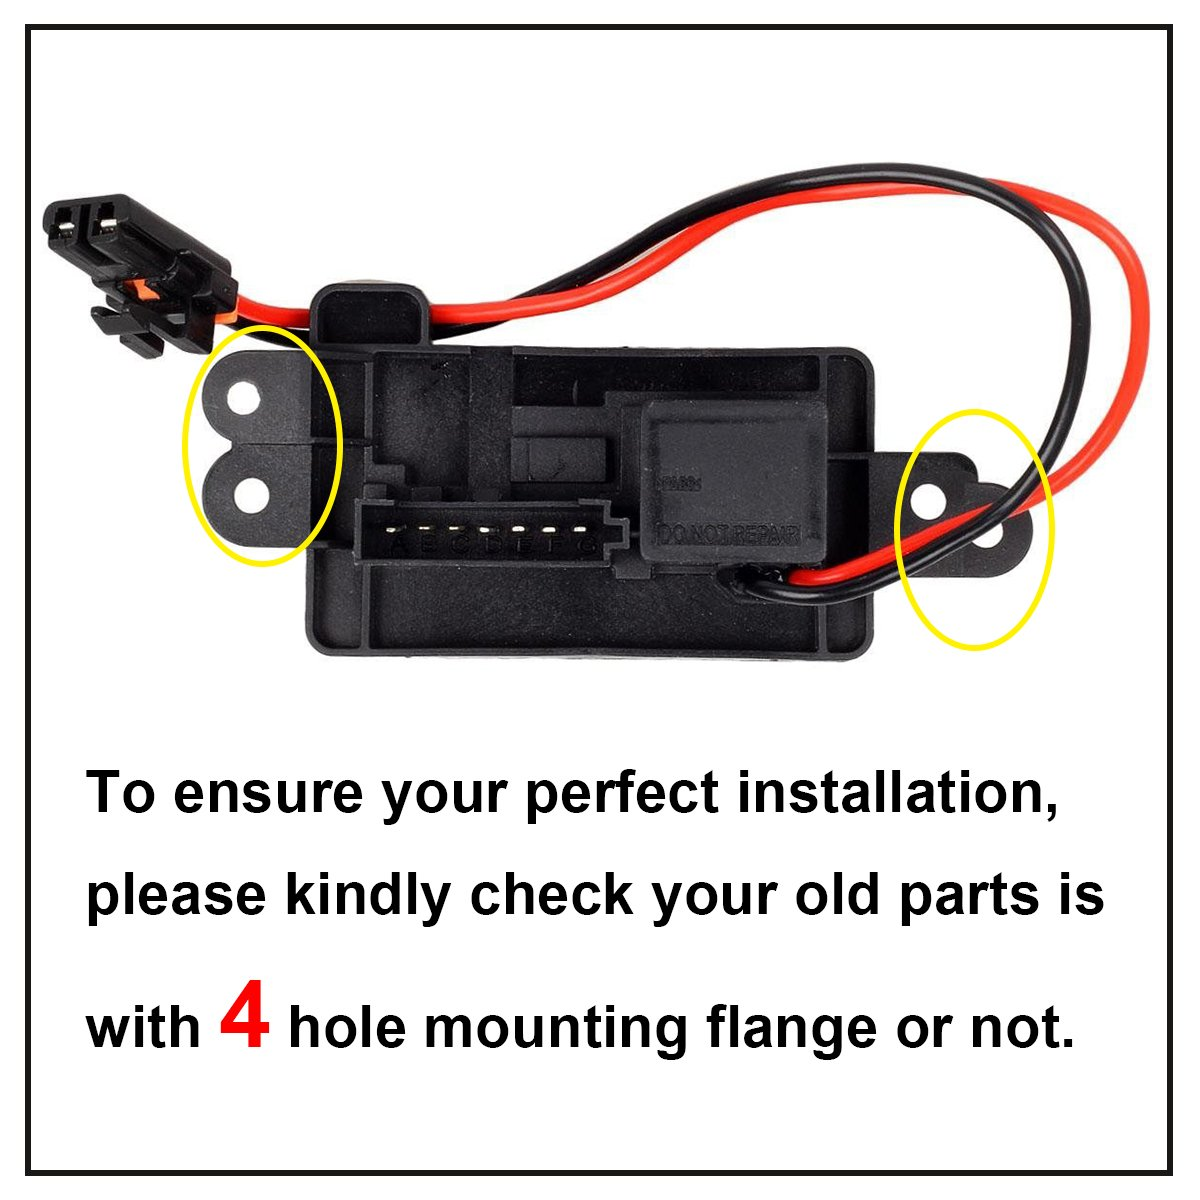 Partssquare 89019088 Manual Blower Motor Resistor 2001 Impala Fan Wiring Schematic Replacement For 2002 2003 2004 2005 2006 Chevrolet Avalanche 1500 2500 Gmc Yukon Xl